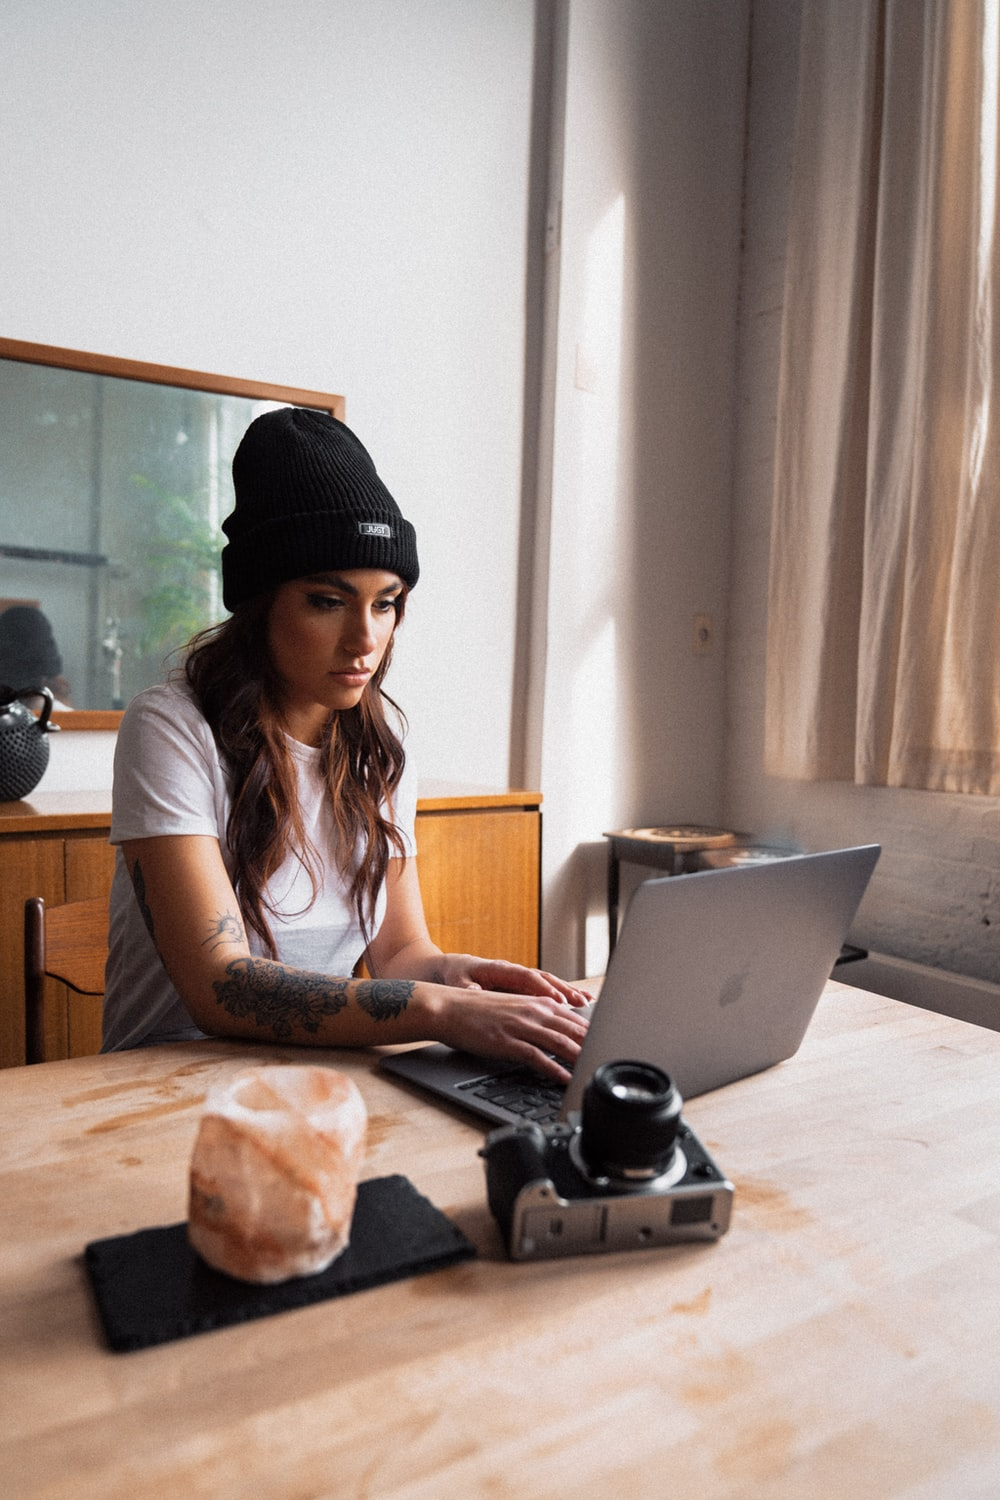 woman in black knit cap using macbook